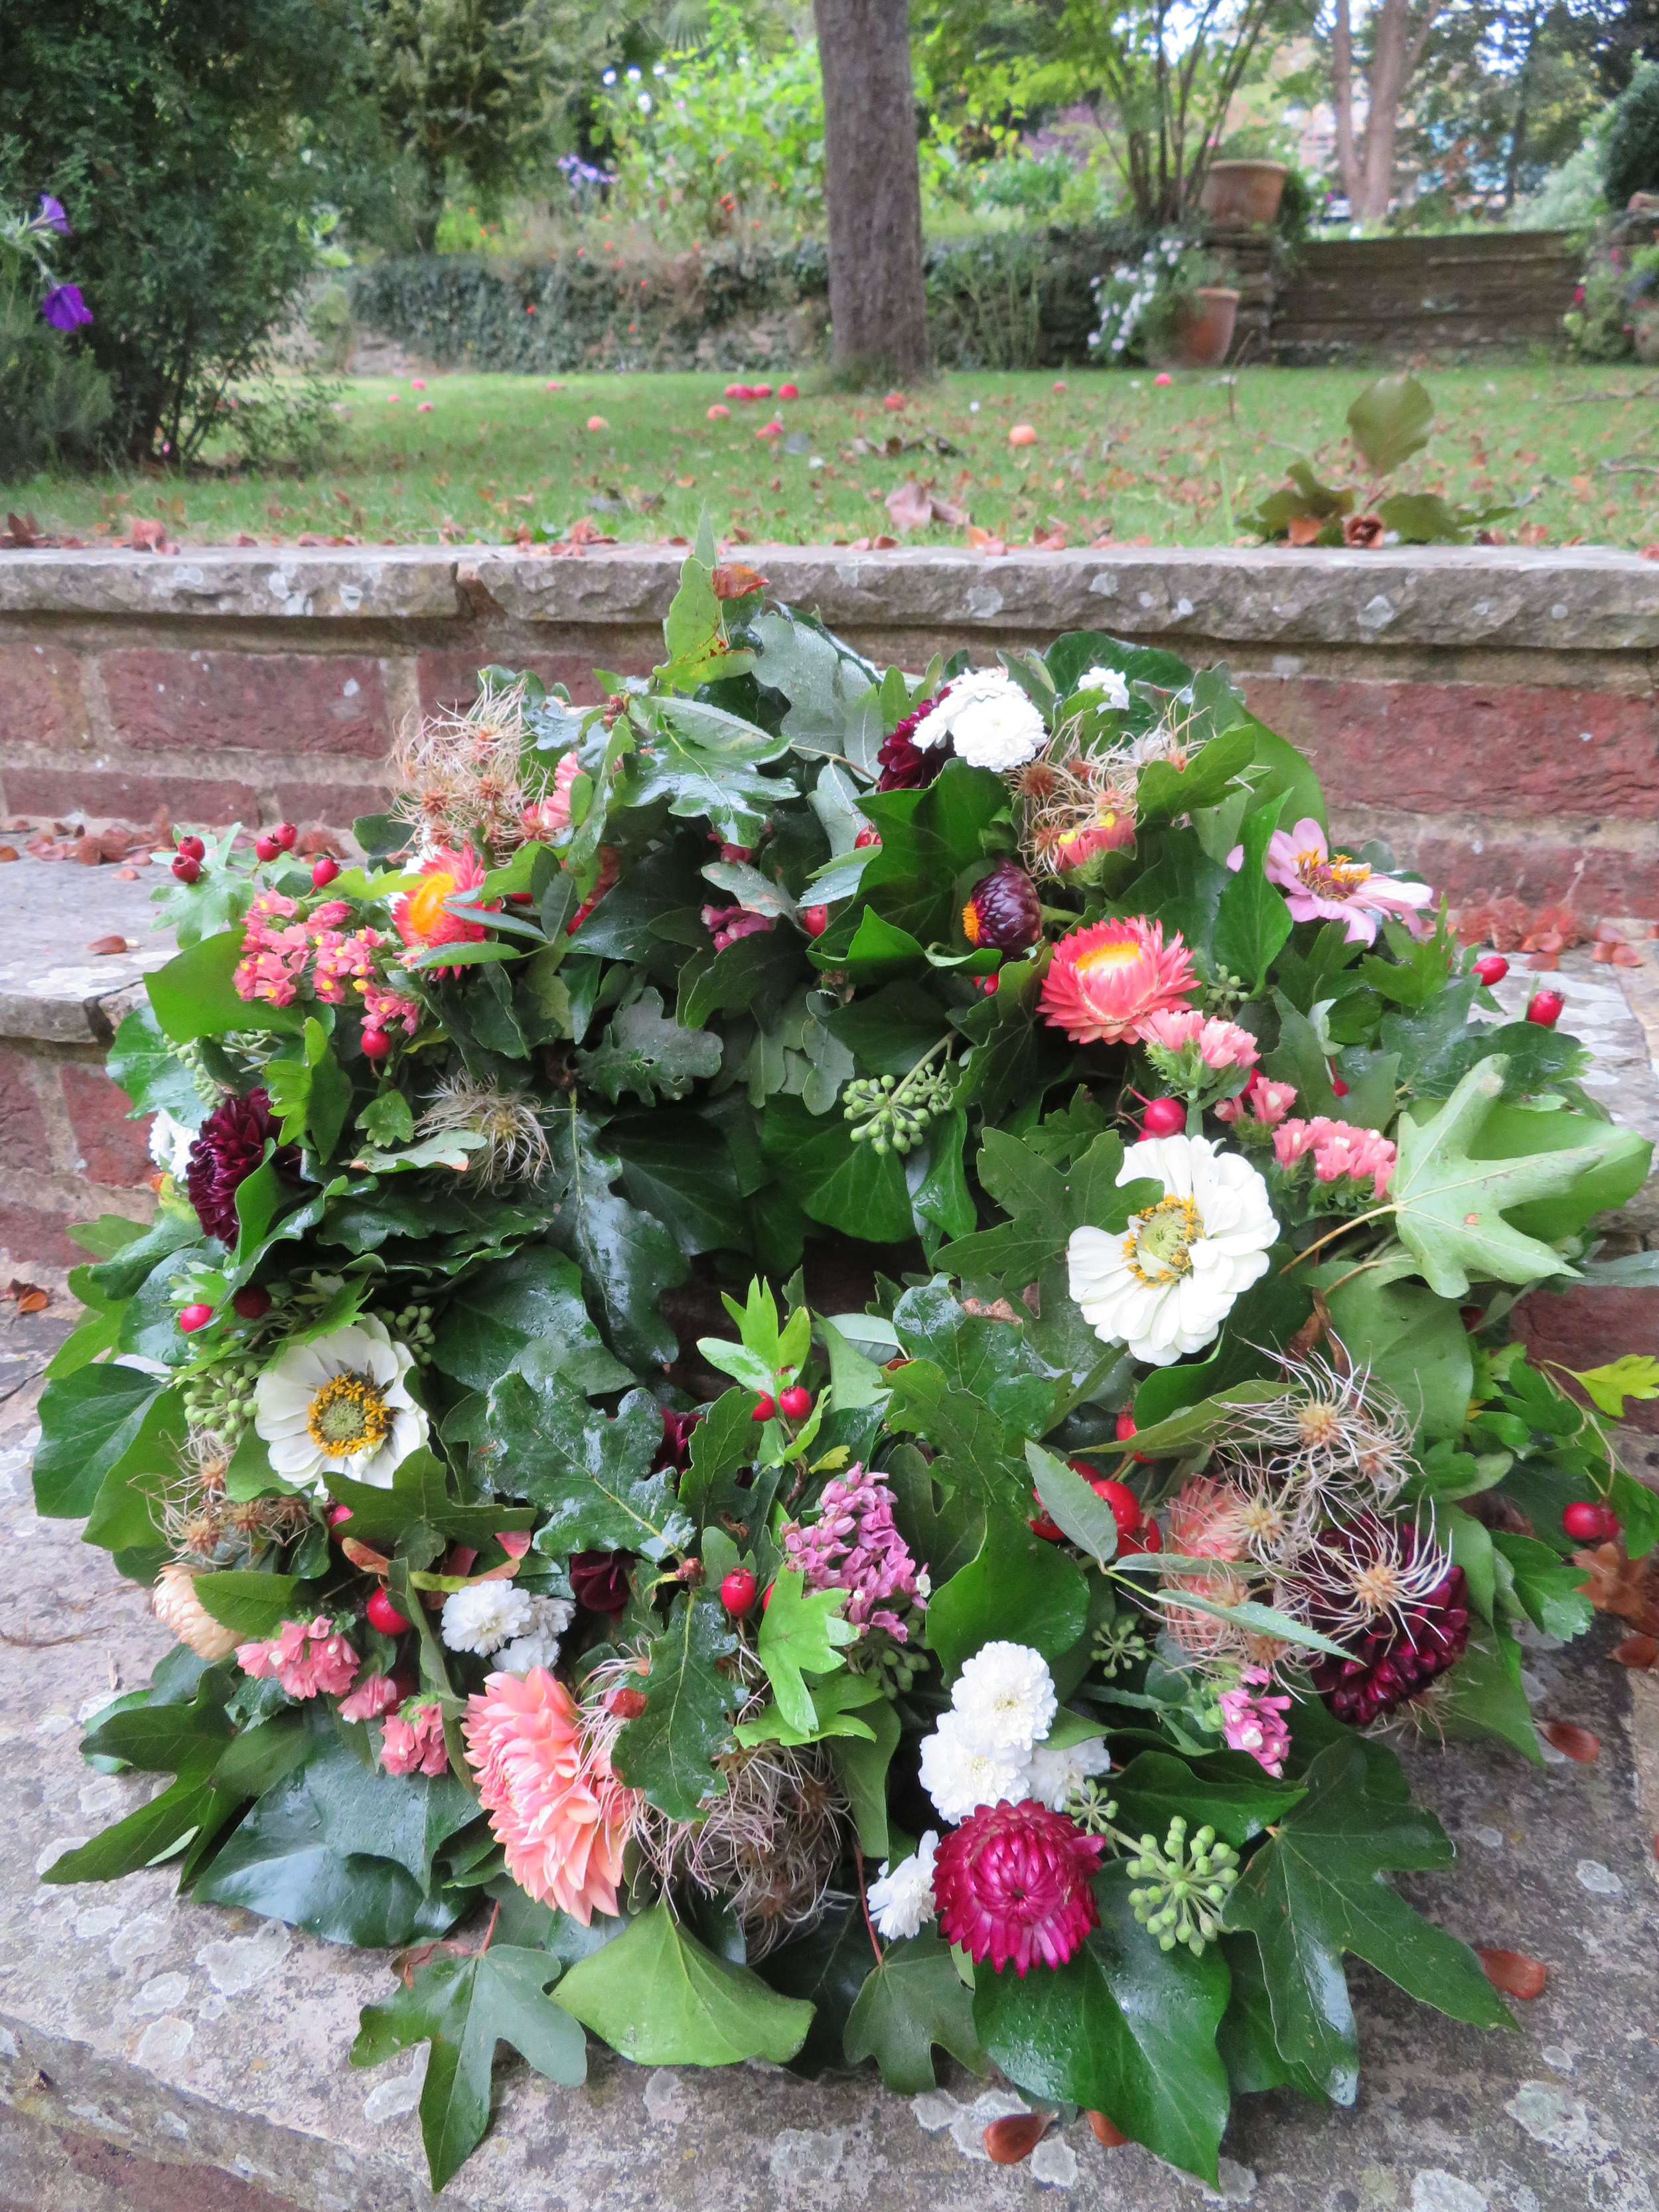 Red berries and long-lasting flowers added in a colour scheme of green, peach and burgundy